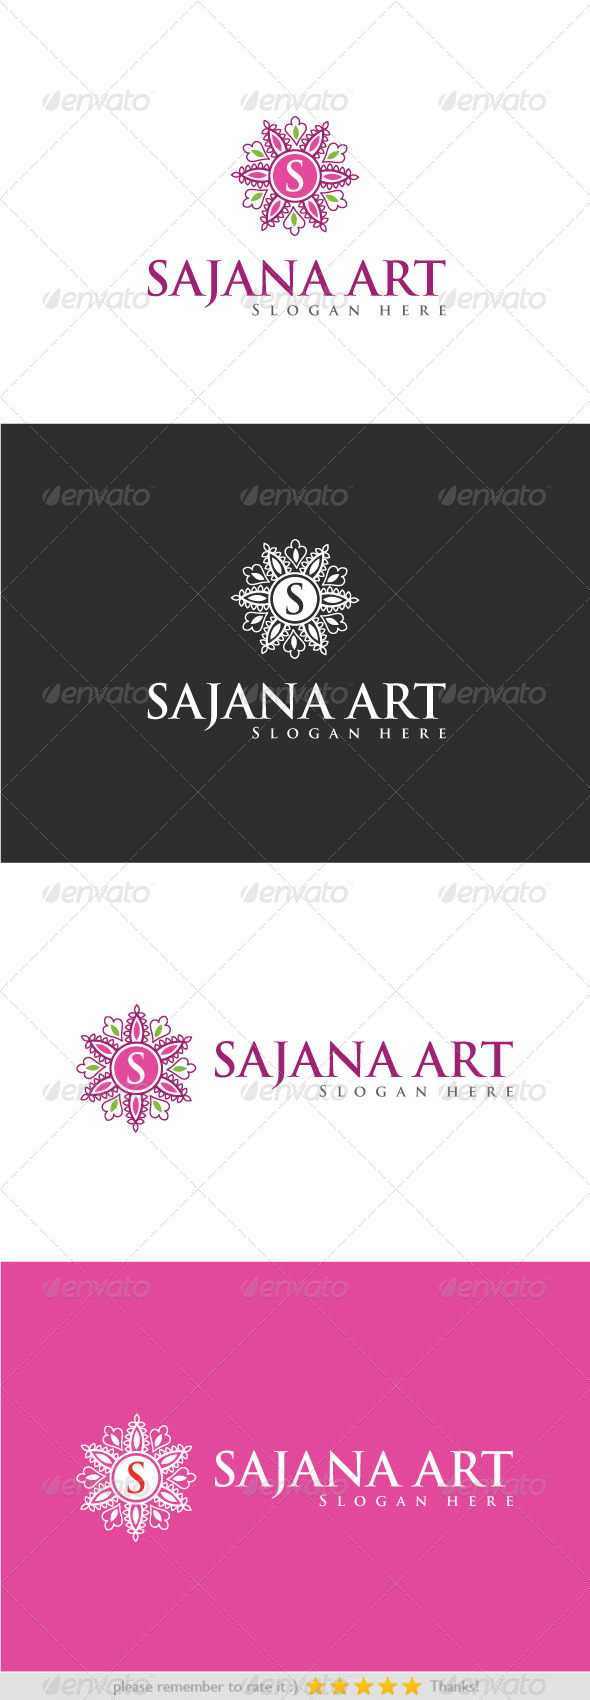 GraphicRiver Sajana Art 8230451